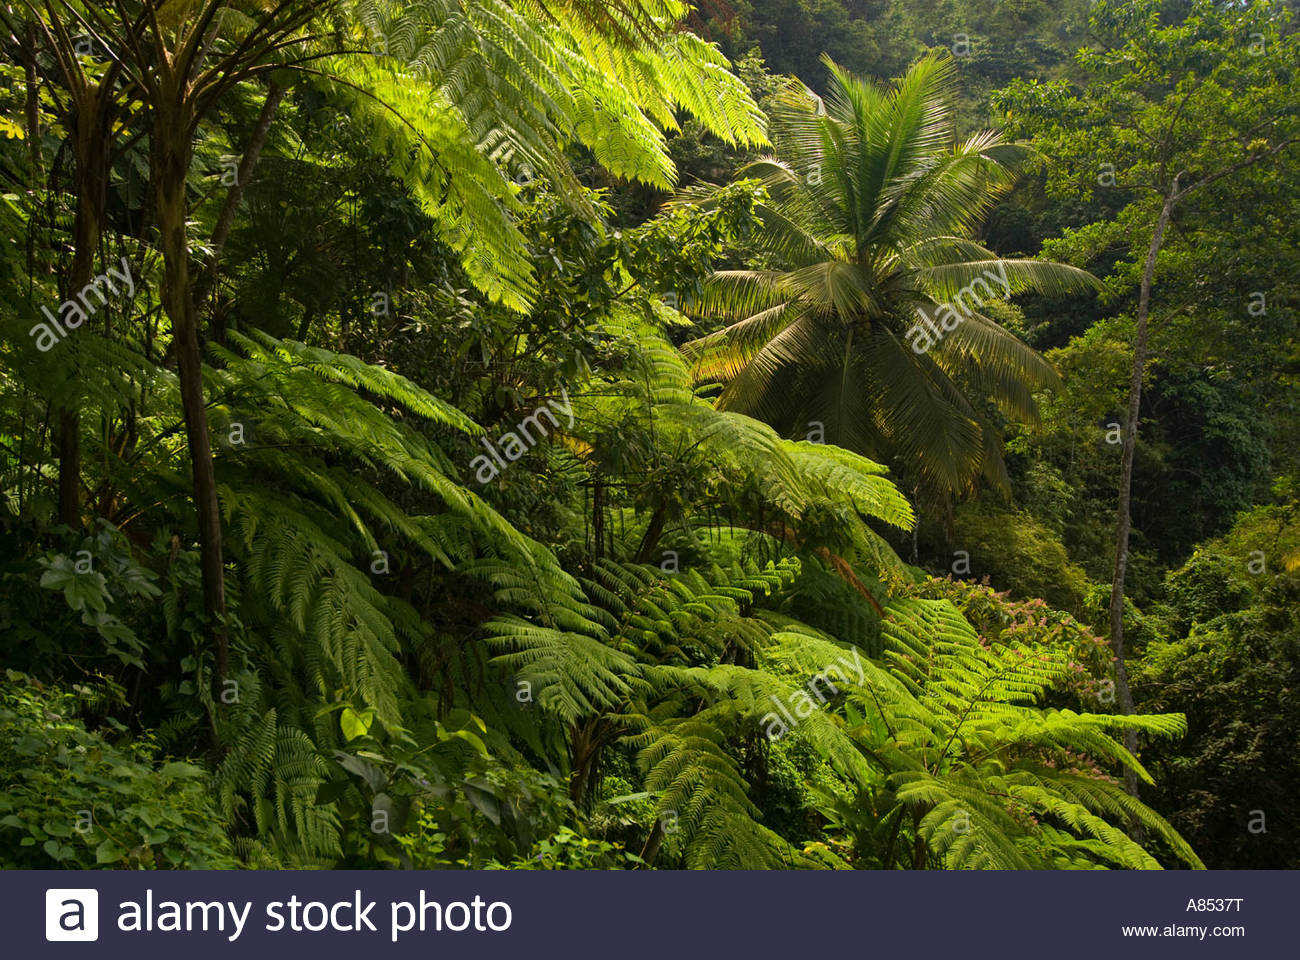 Palm trees in the rainforest, St Lucia, Windward Islands, Caribbean - Stock Image